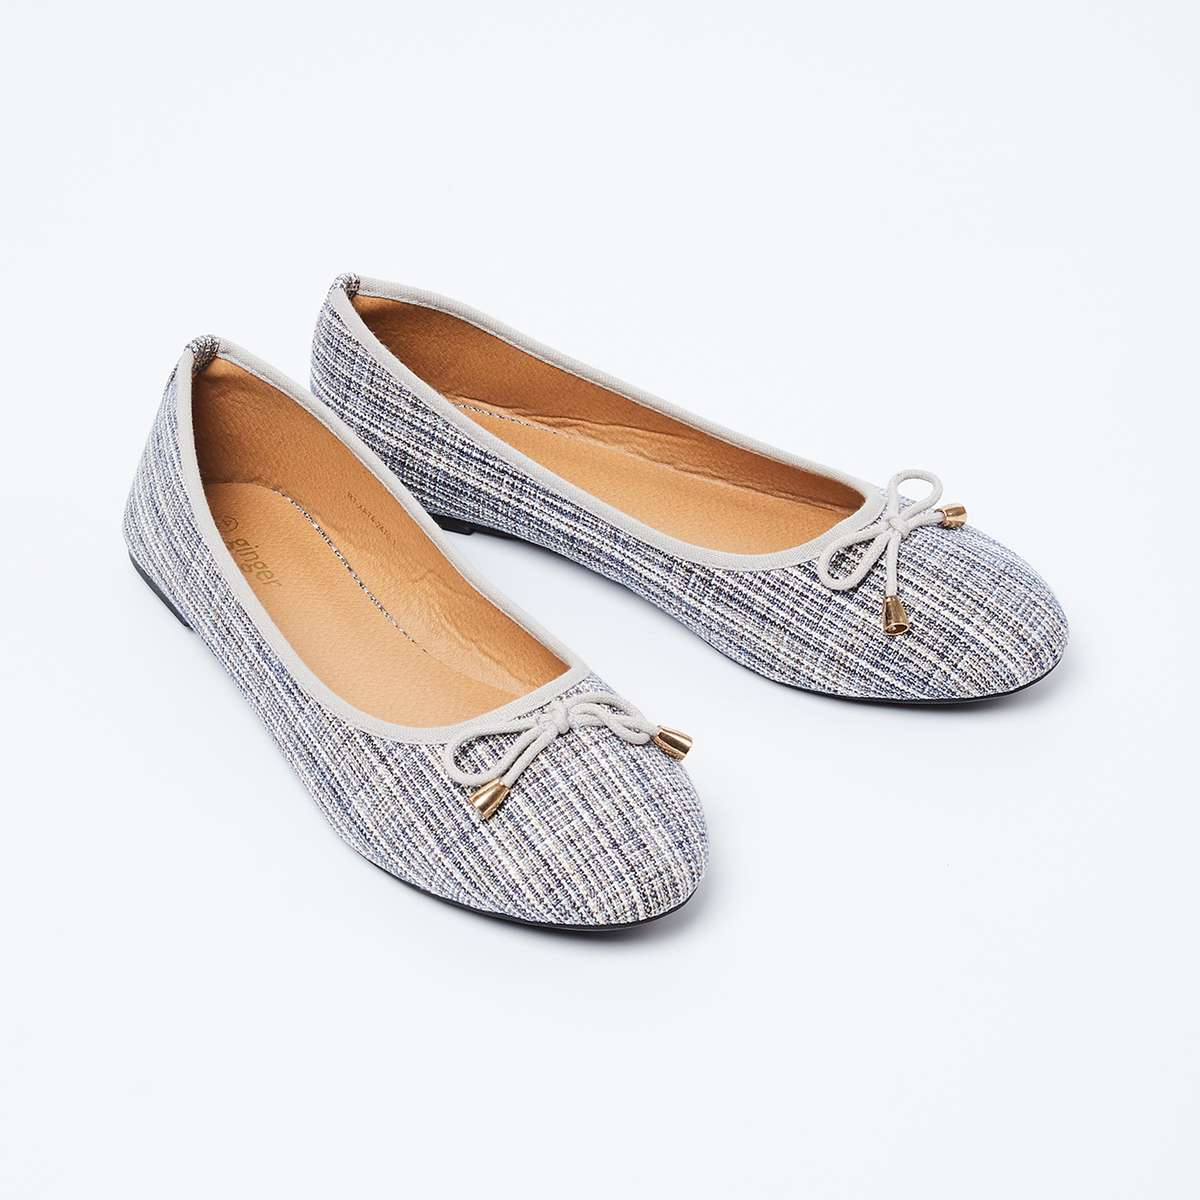 6.GINGER Patterned Weave Ballerinas with Mock Tie-Up